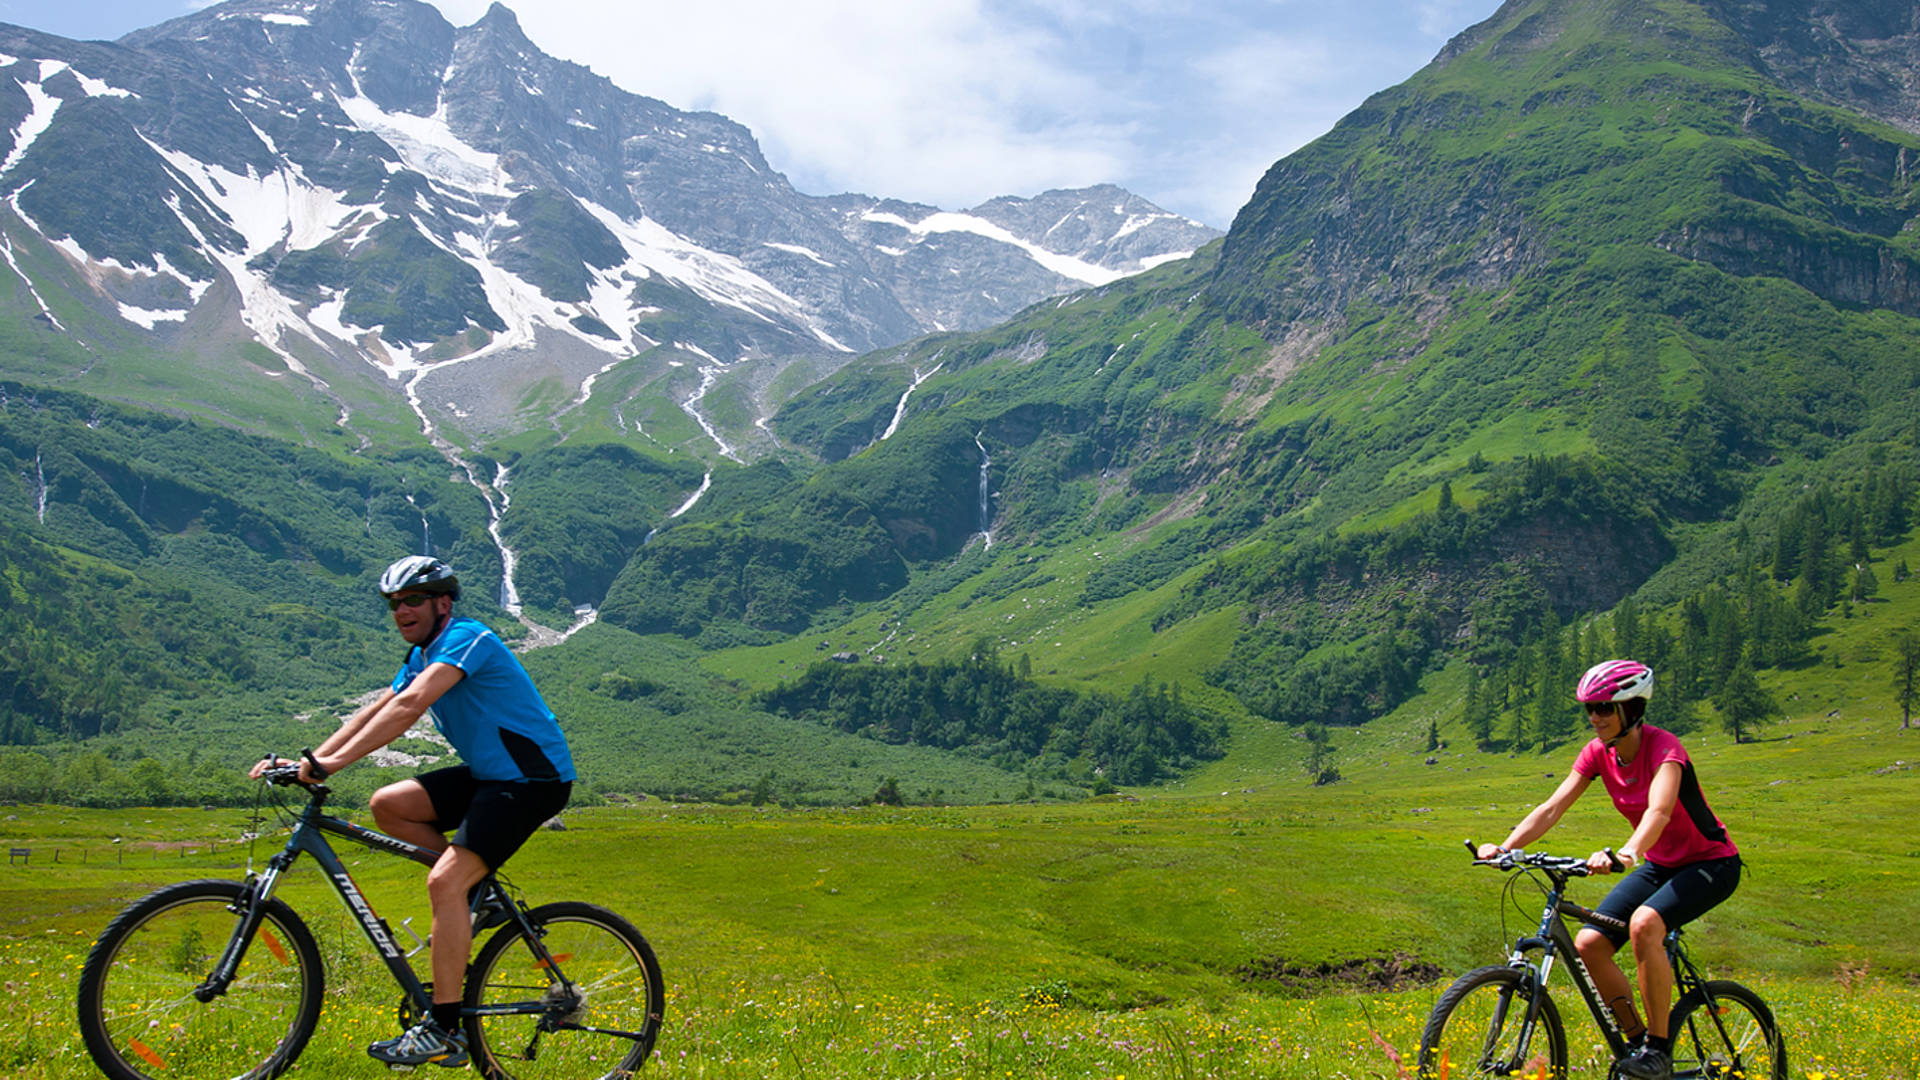 Ski Touring Center Rauris - Rauris Valley - Holiday in the